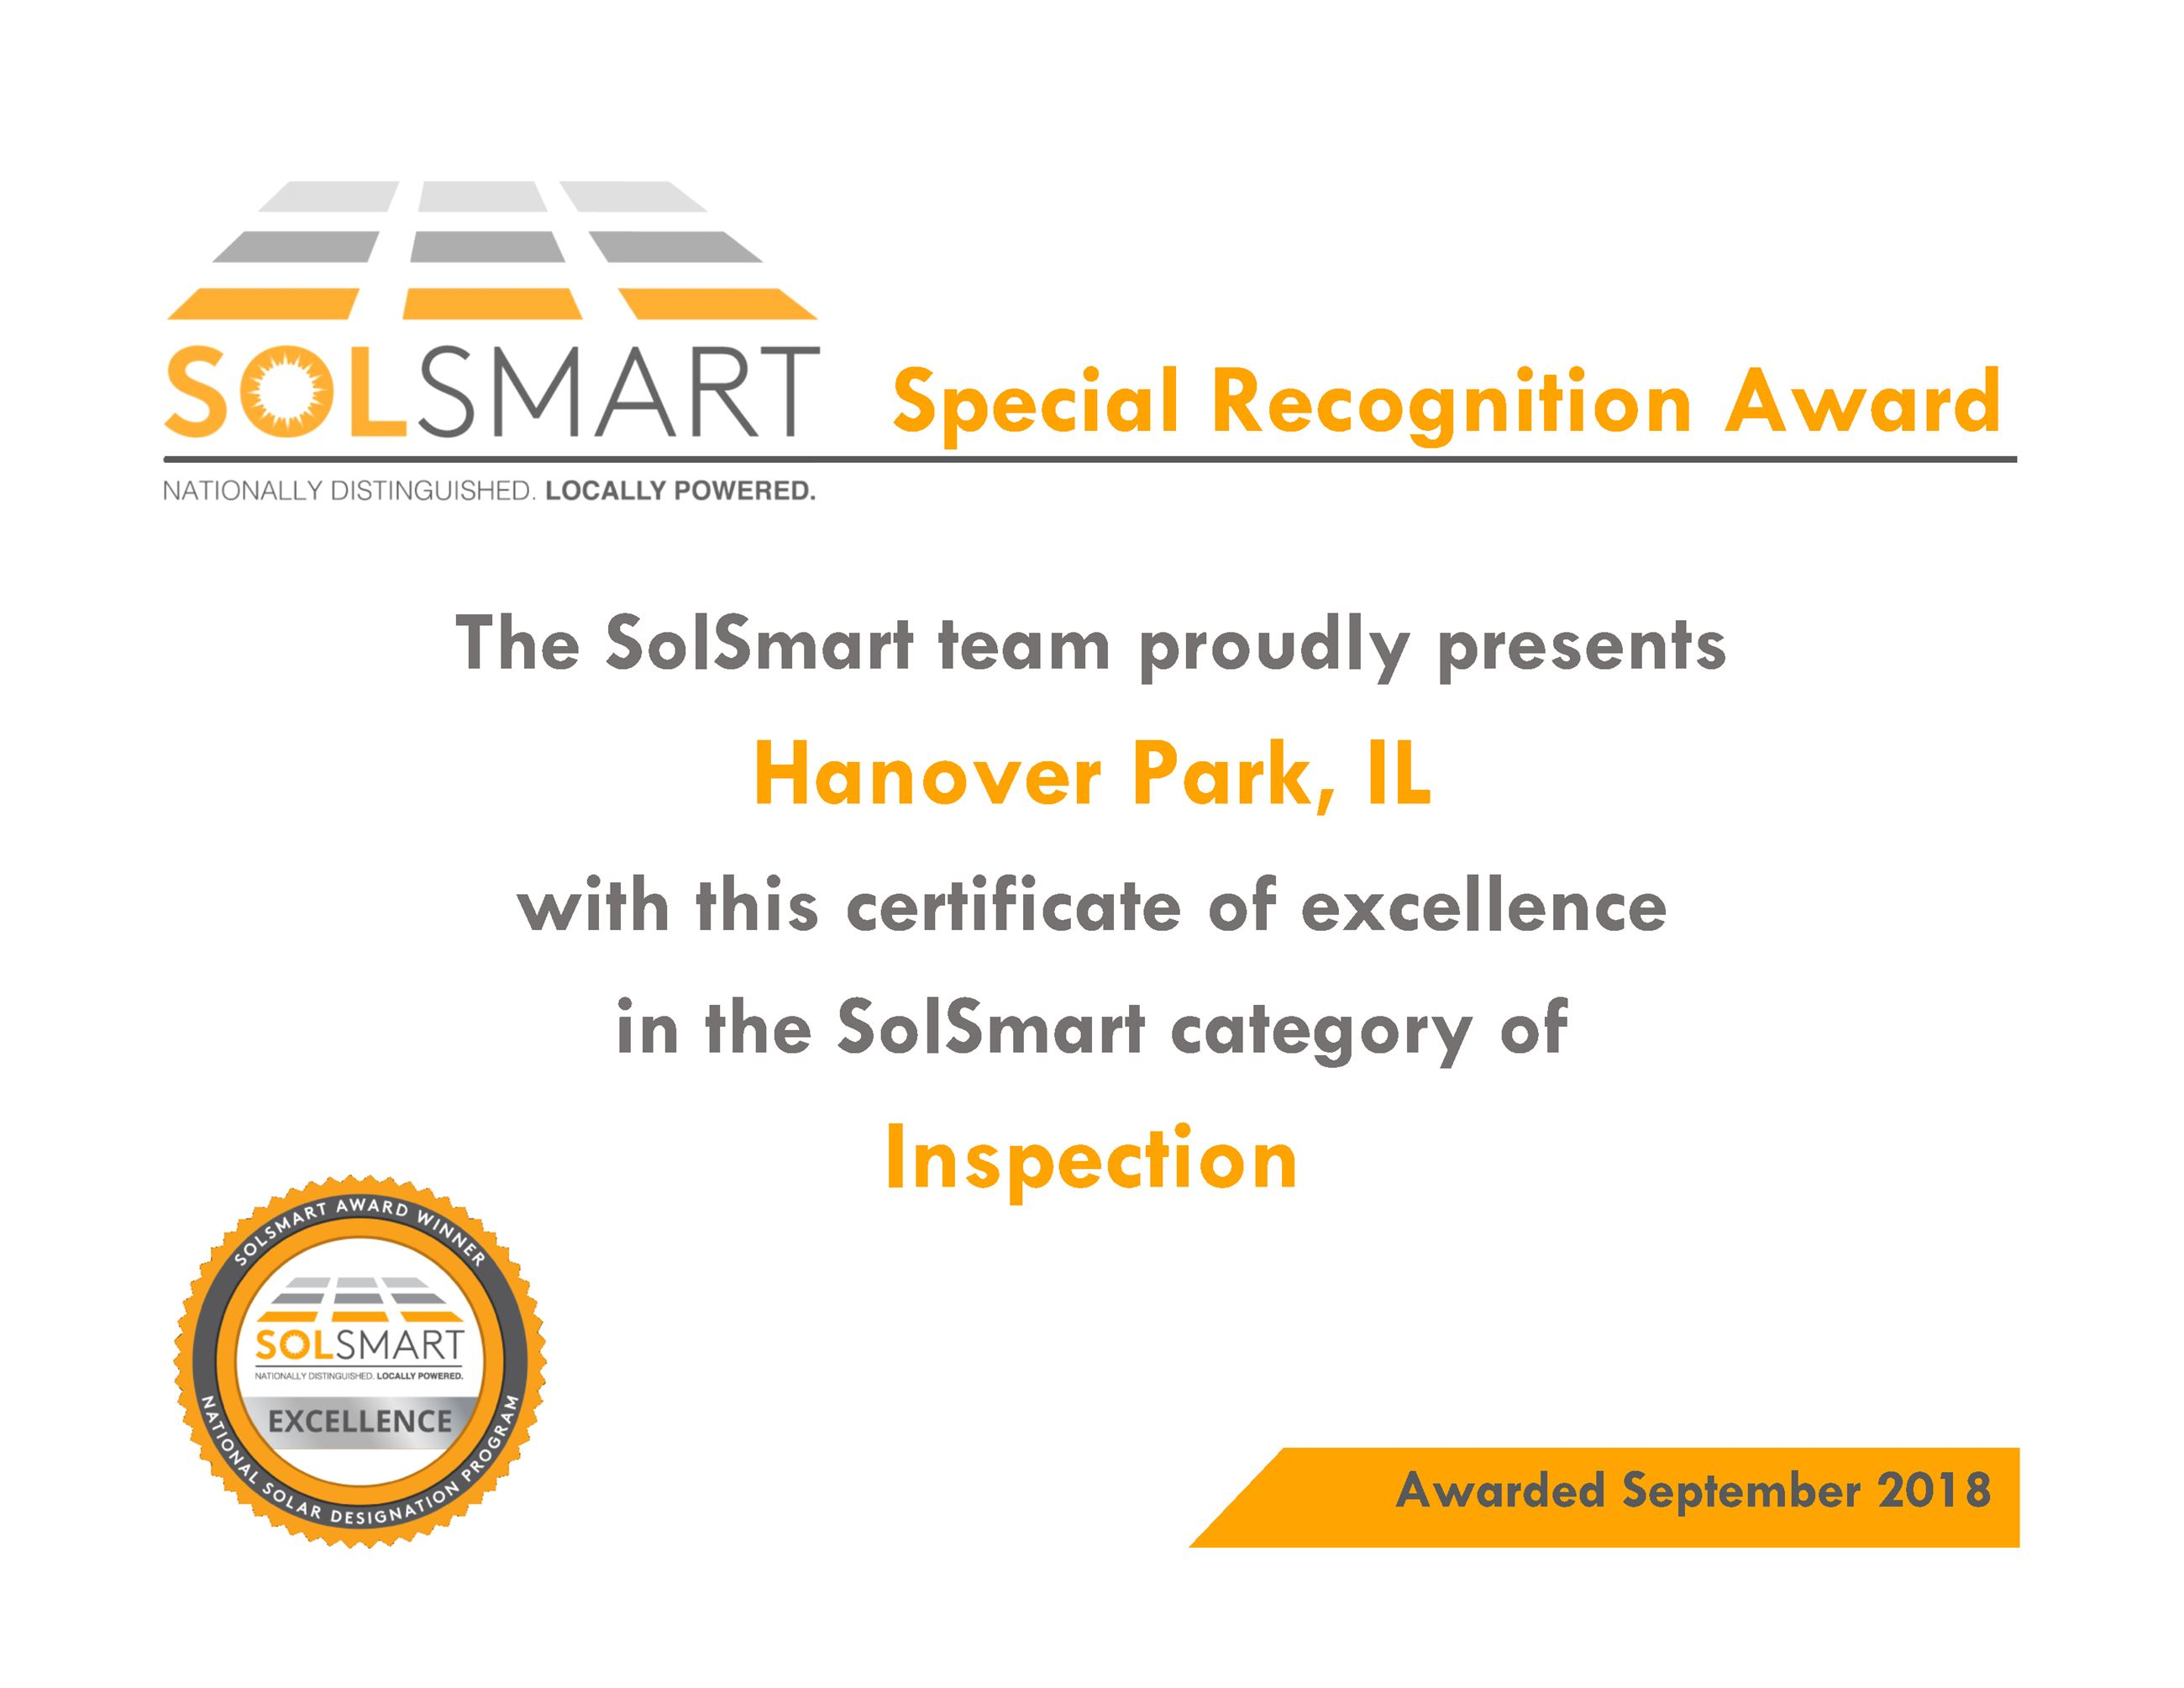 Special Recognition Award_HanoverPark Opens in new window